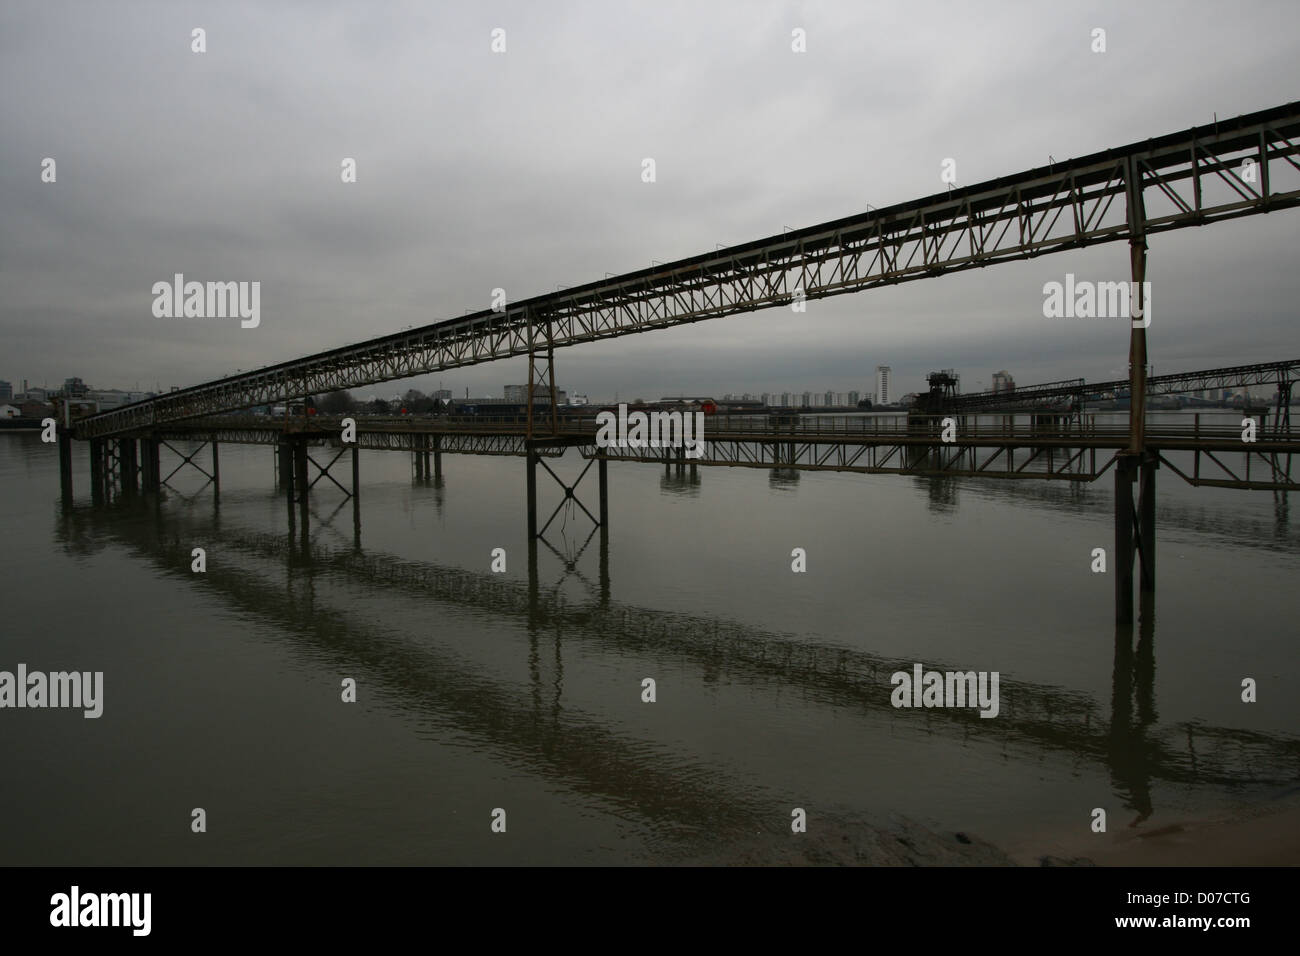 Industrial area on the Thames, London - Stock Image